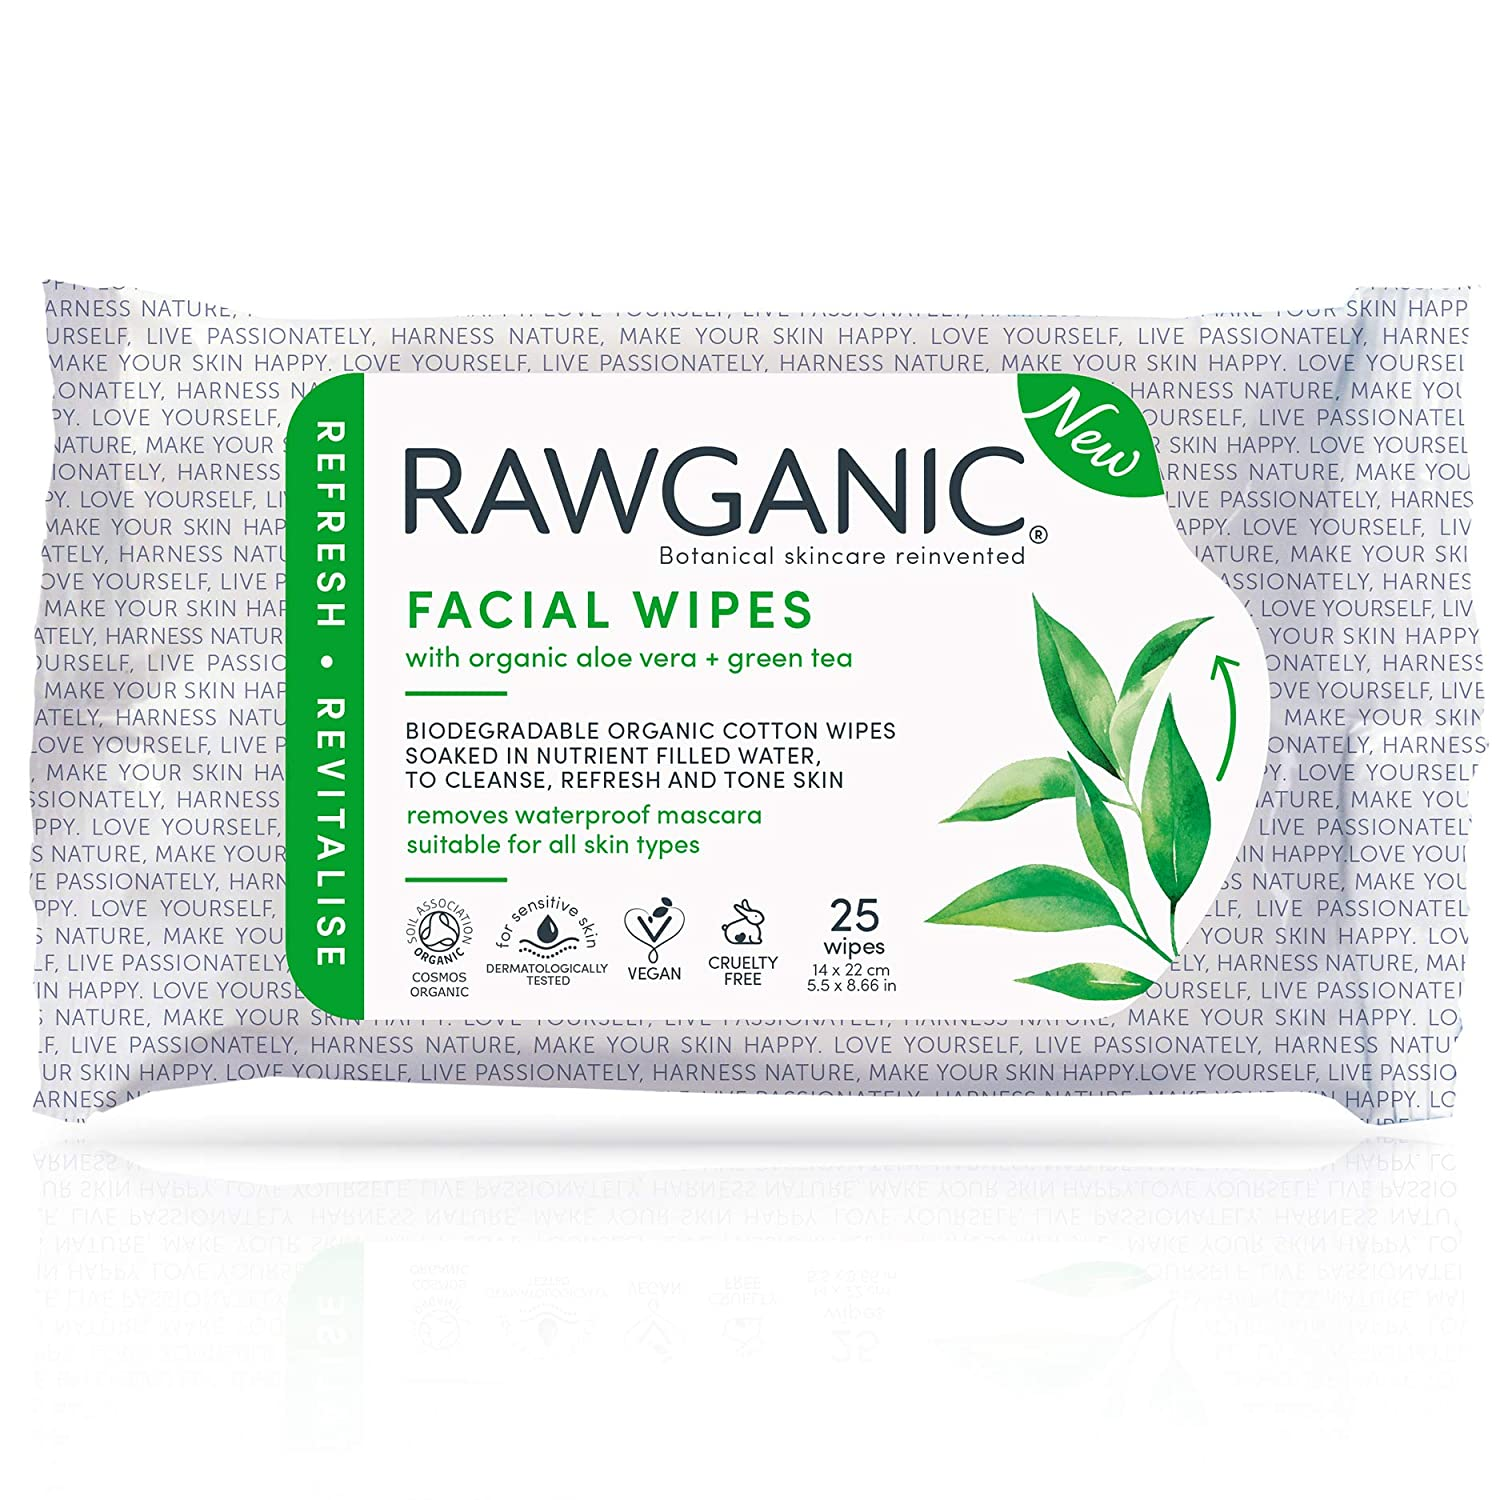 RAWGANIC Refreshing Facial Wipes, Fragrance-free Biodegradable Organic Cotton Wipes with Aloe Vera and Green Tea (25-Count)